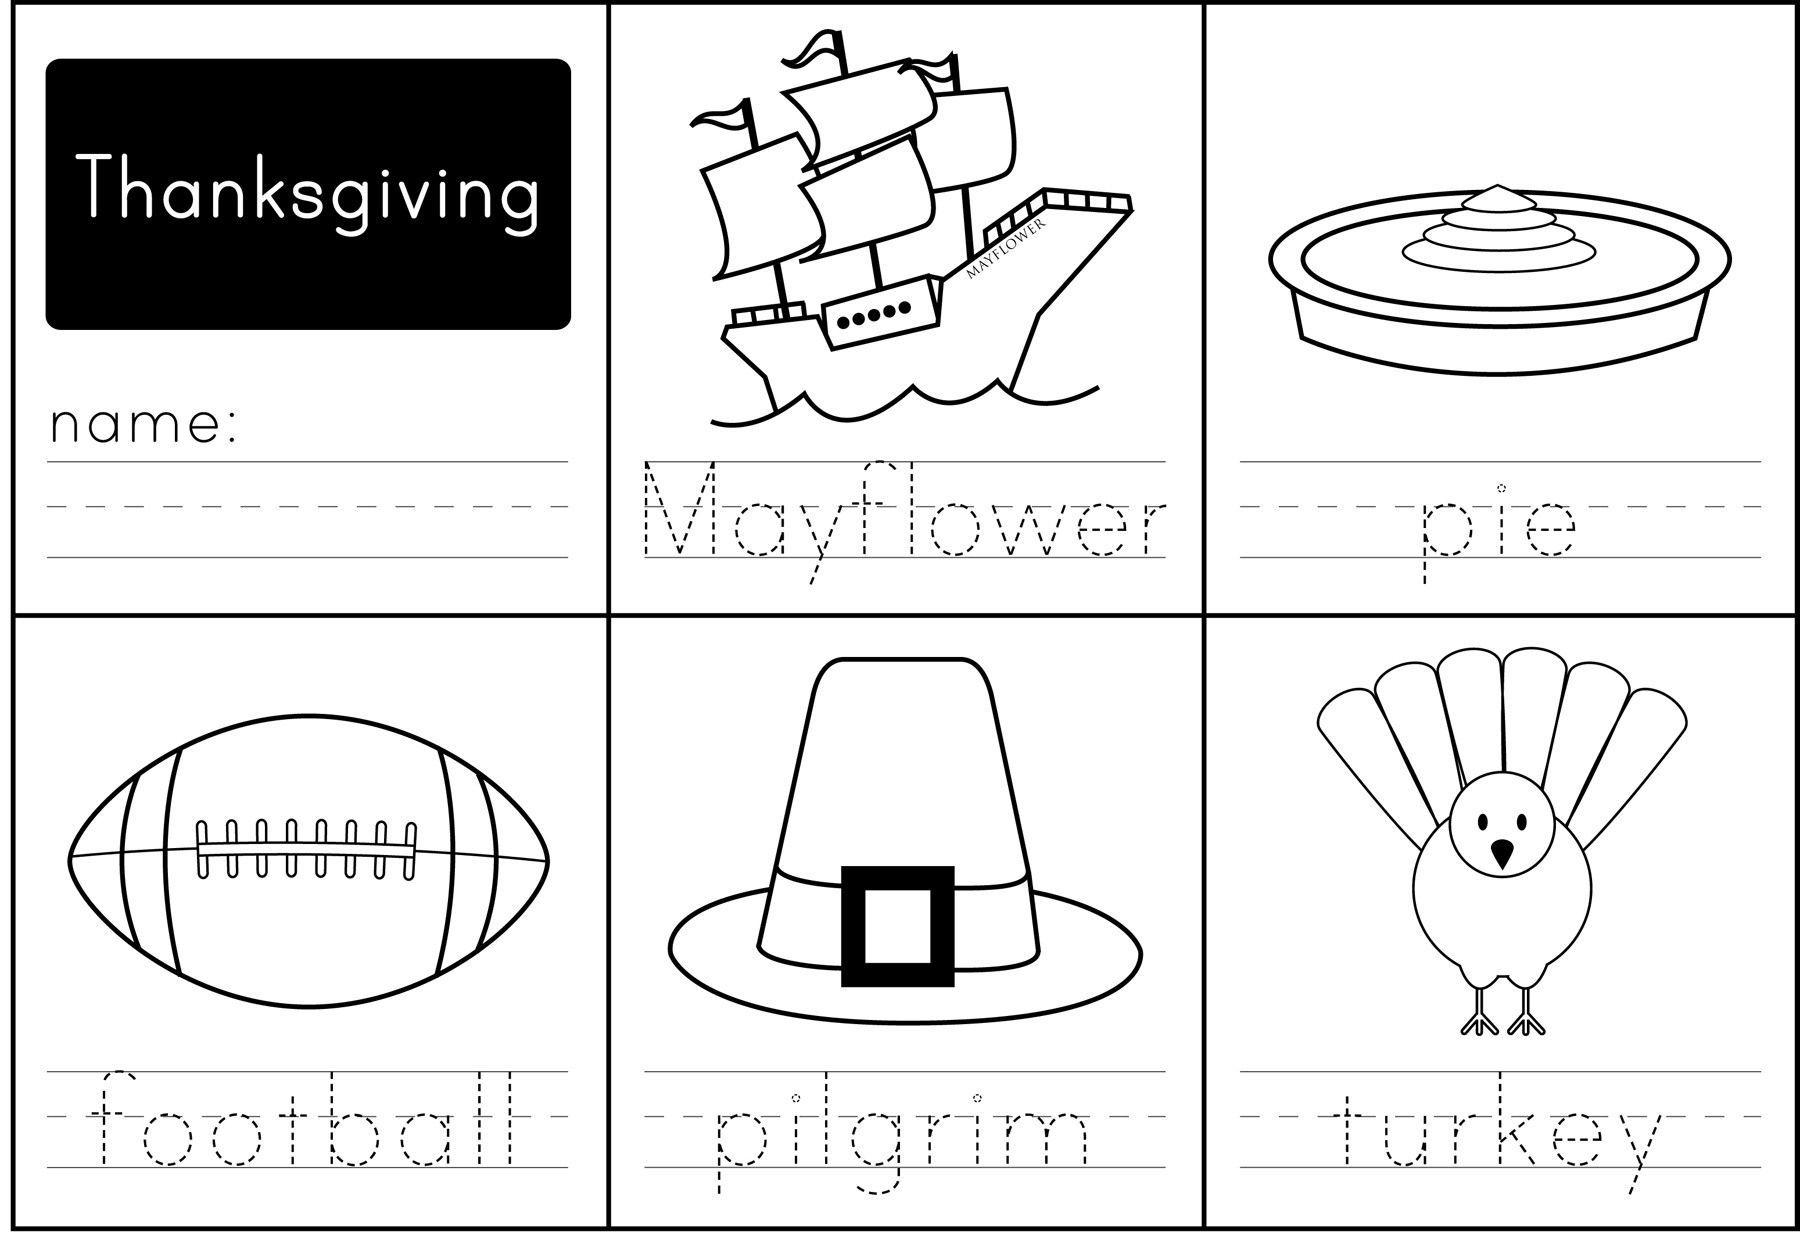 7 Best Images of Printable Preschool Thanksgiving Activities ...